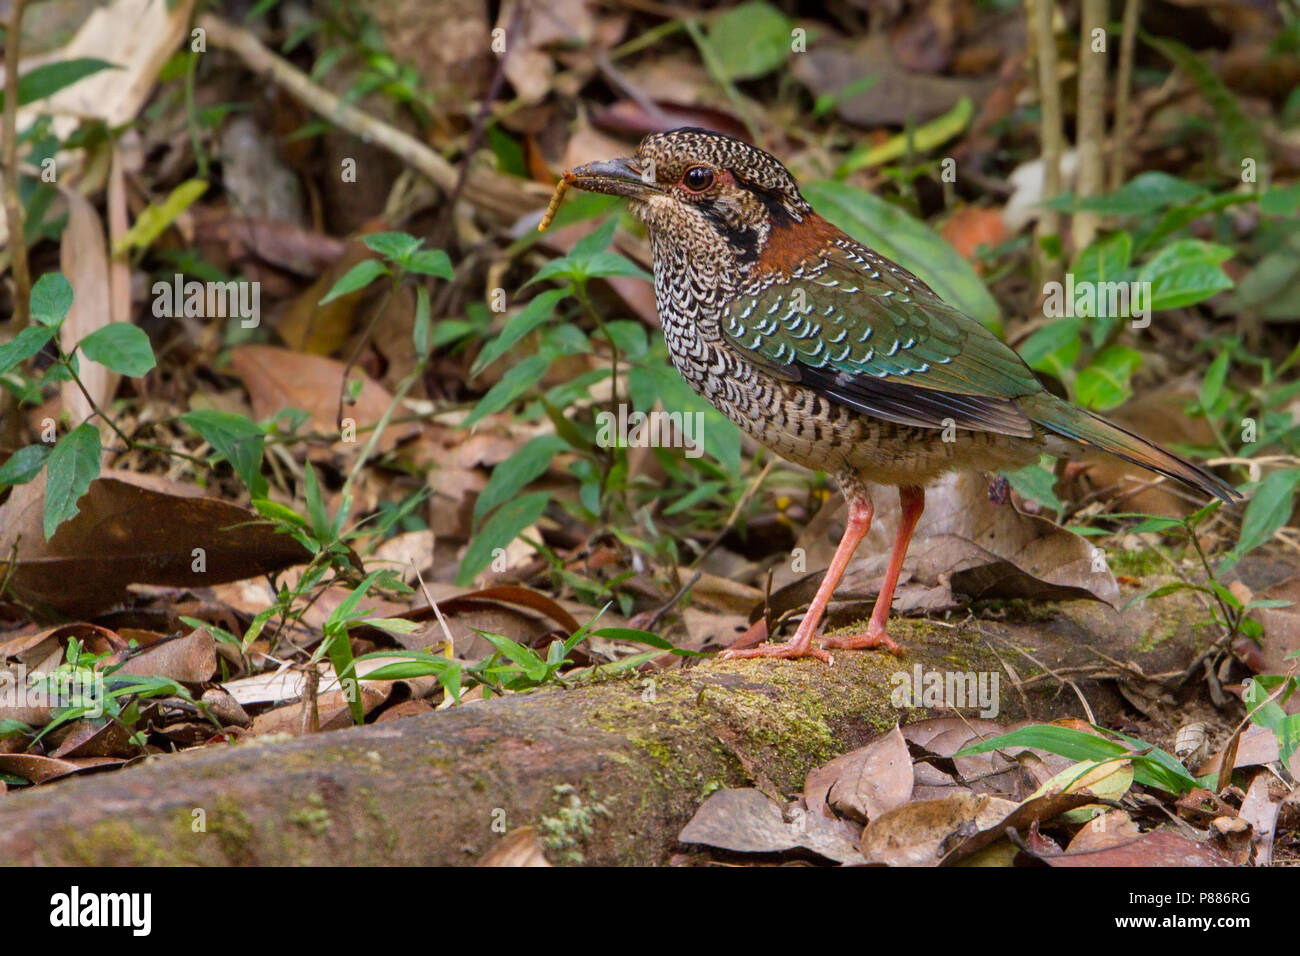 Scaly Ground Roller (Geobiastes squamiger) a stunning endemic of Madagascar. - Stock Image